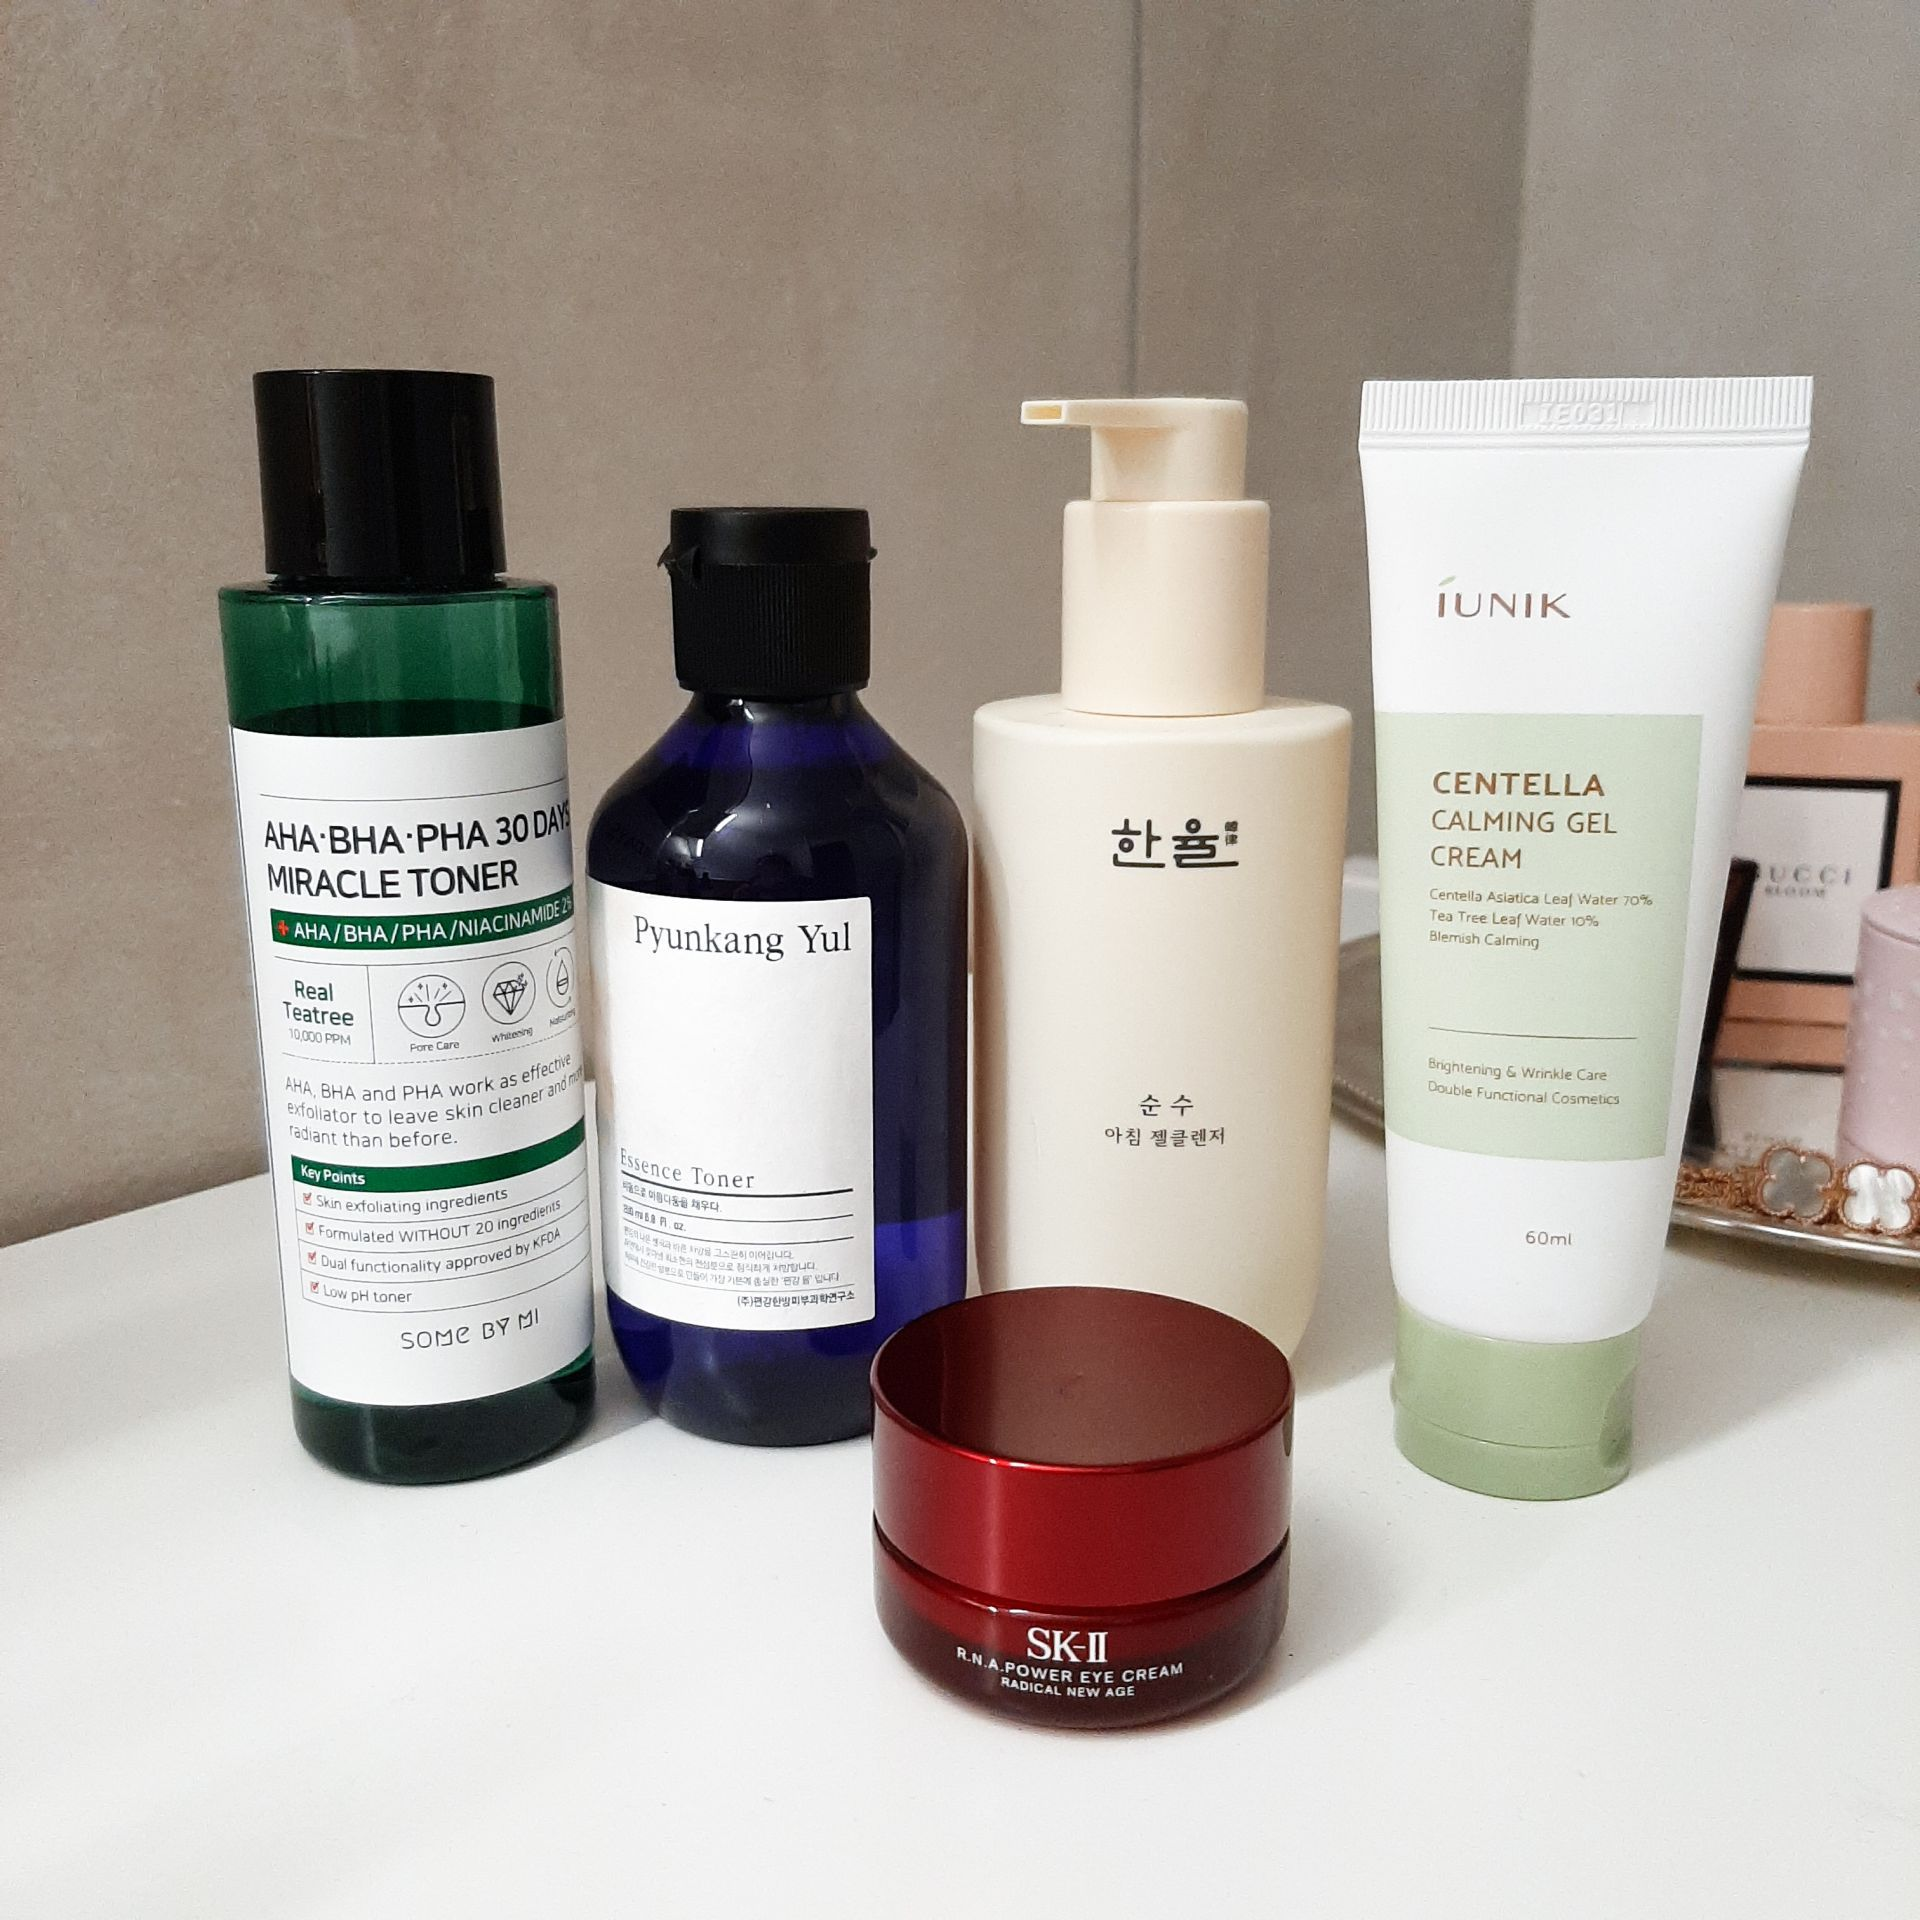 Fungal Acne Safe Korean Skincare Routine Korean Skincare Korean Skincare Routine Oily Skin Care Routine